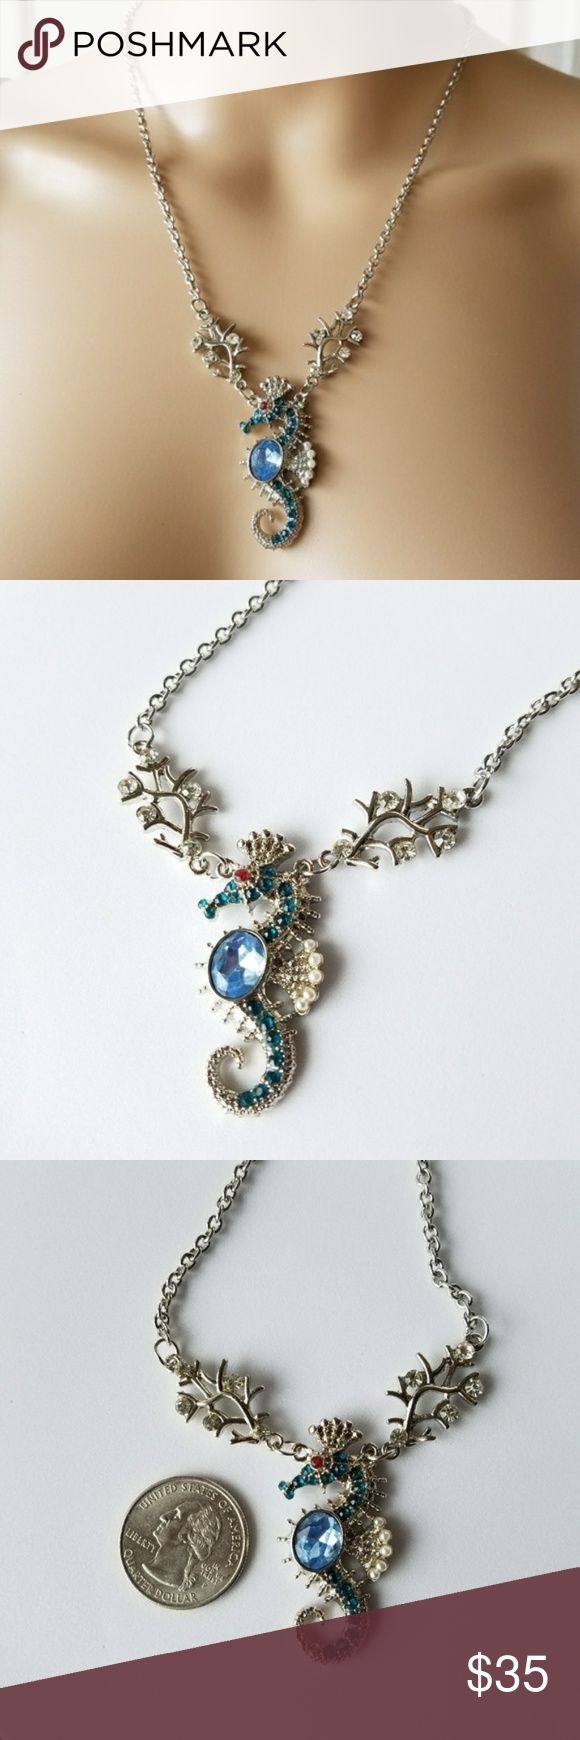 BLUE Topaz SILVER Seahorse Pendant Necklace Nautical ocean themed necklace depicting a beautiful seahorses surrounded by coral covered in rhinestones. The seahorse has a faux blue topaz aquamarine body and small dark blue simulated sapphires. Little ruby red eye gemstones. Detailed simple dainty sea animal boho bohemian hippy hippie gypsy Jewelry Necklaces